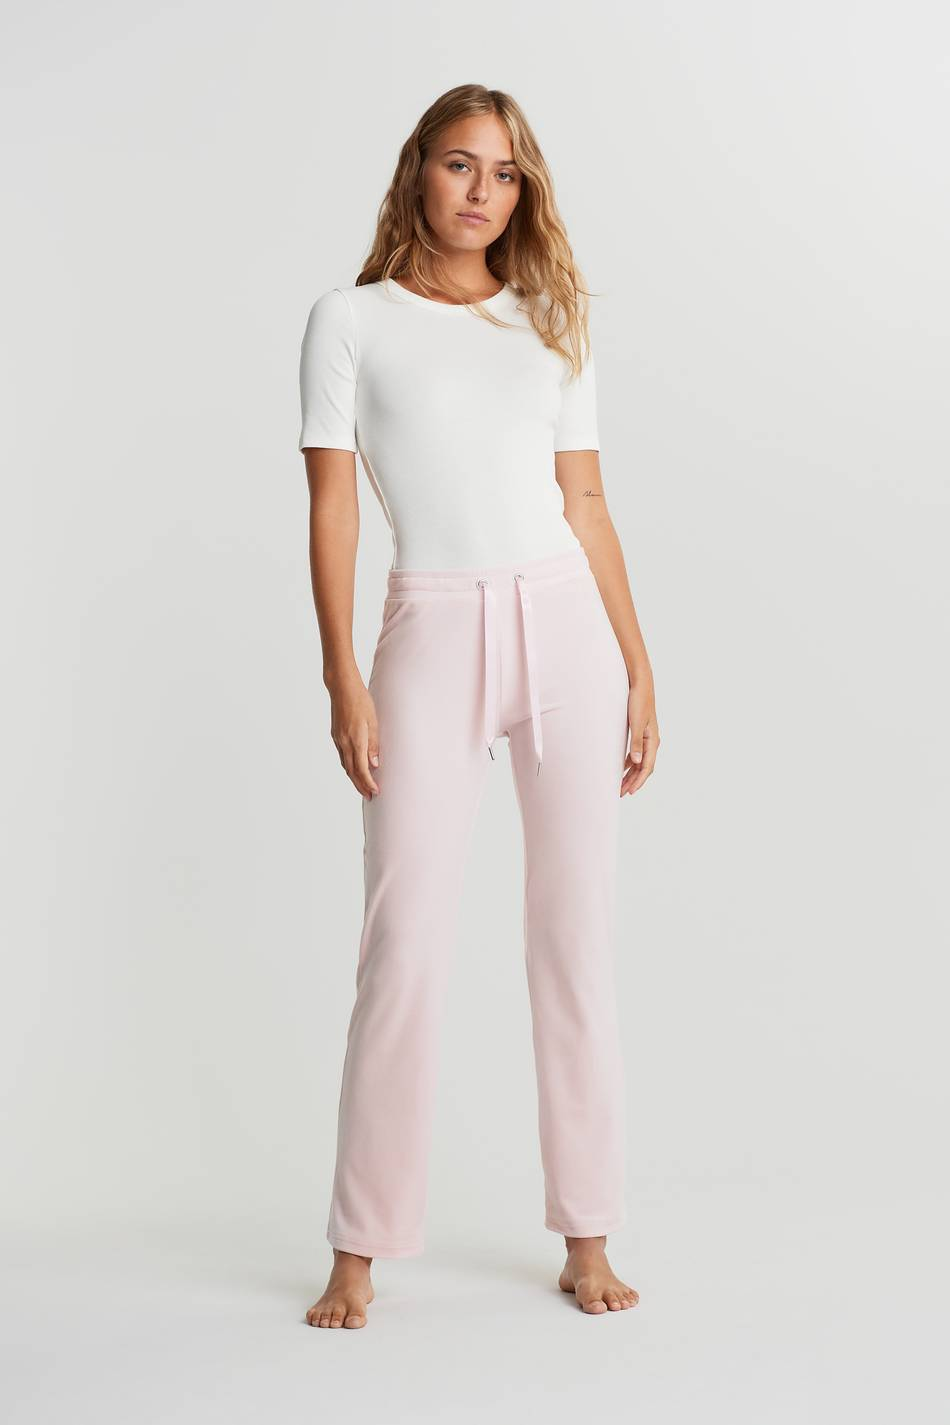 Gina Tricot Cecilia velour trousers M Female Light pink